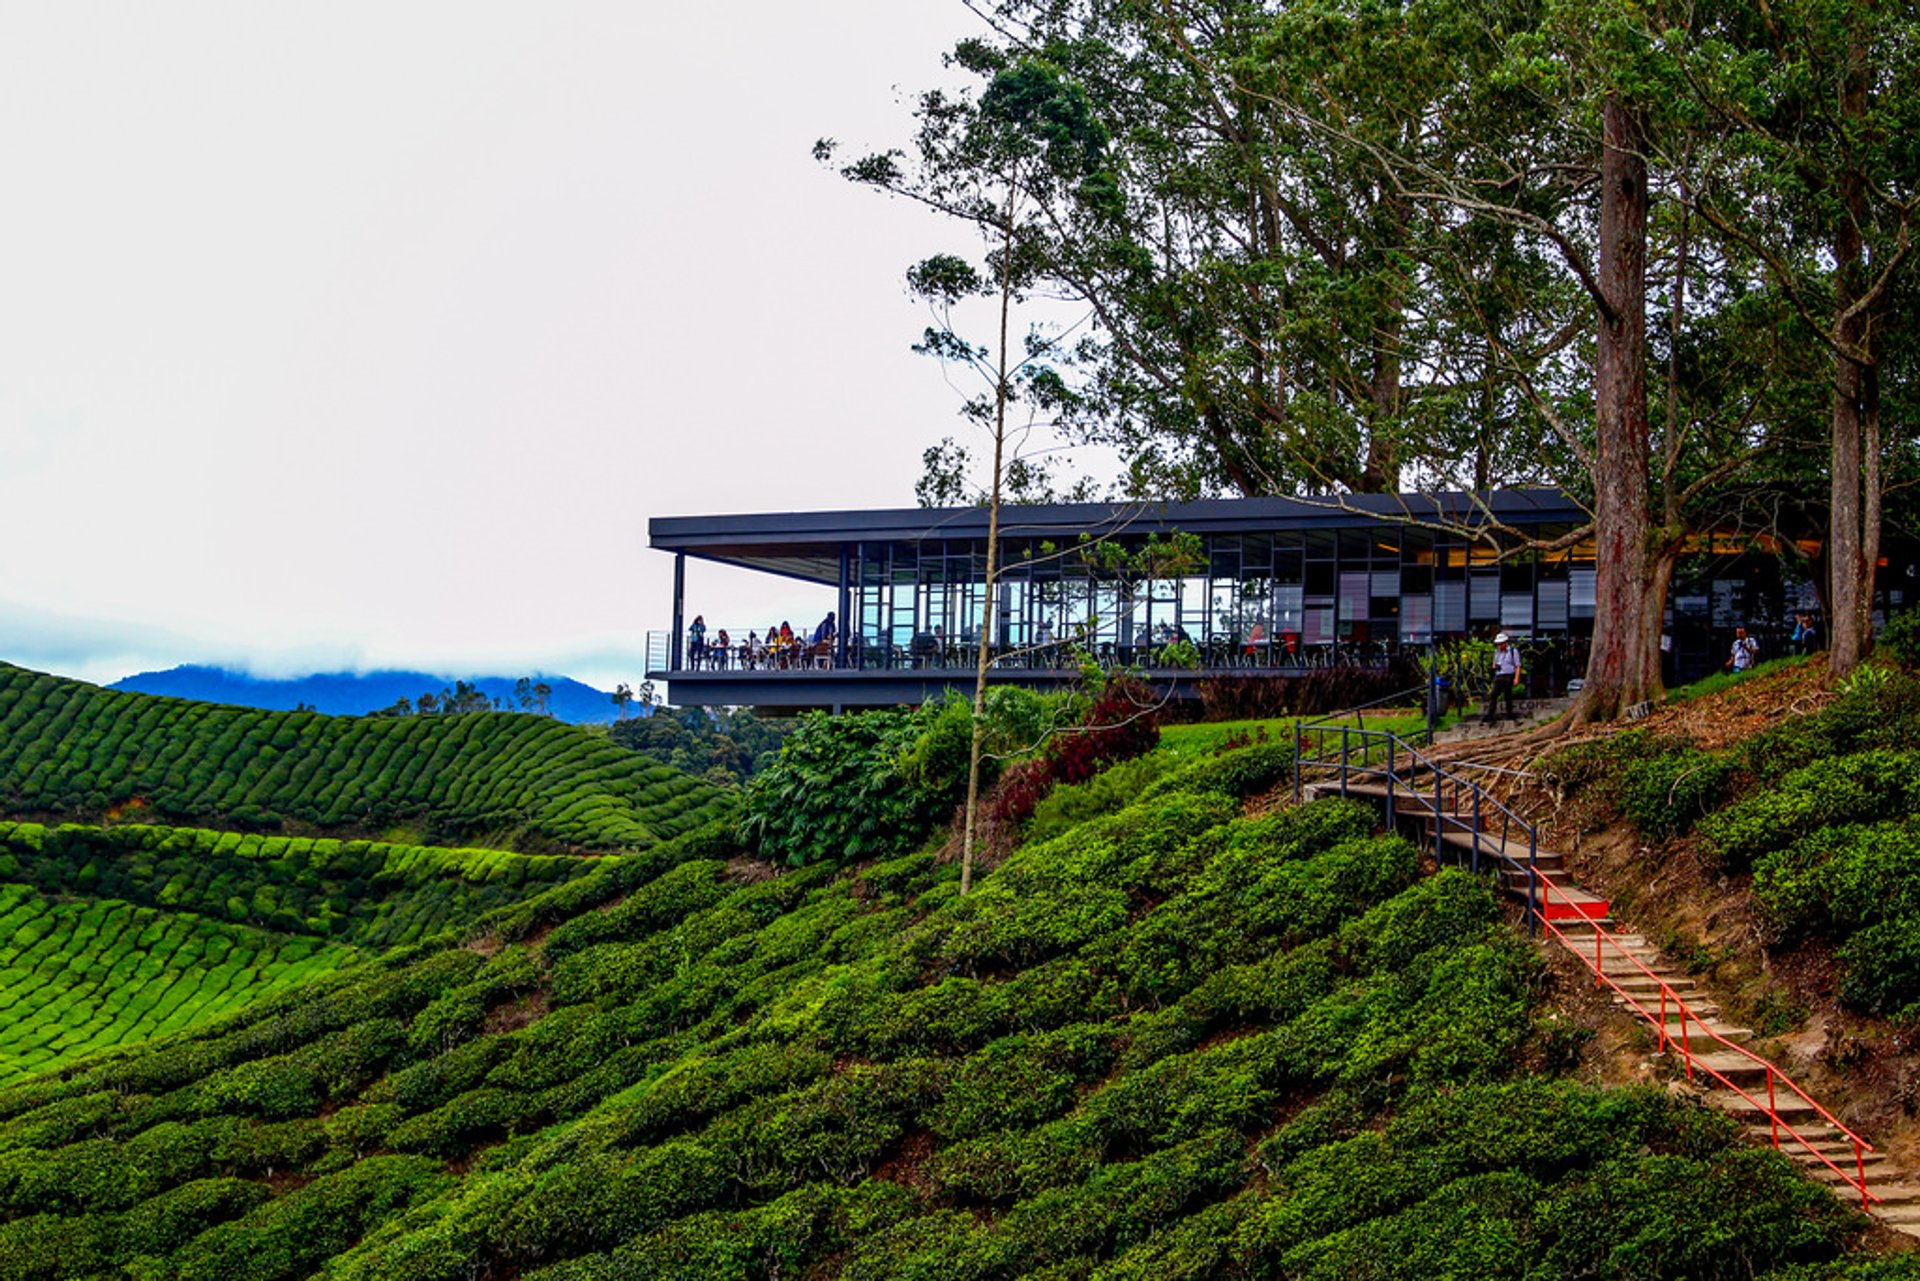 BOH tea plantation viewing Deck, Cameron Highlands 2019